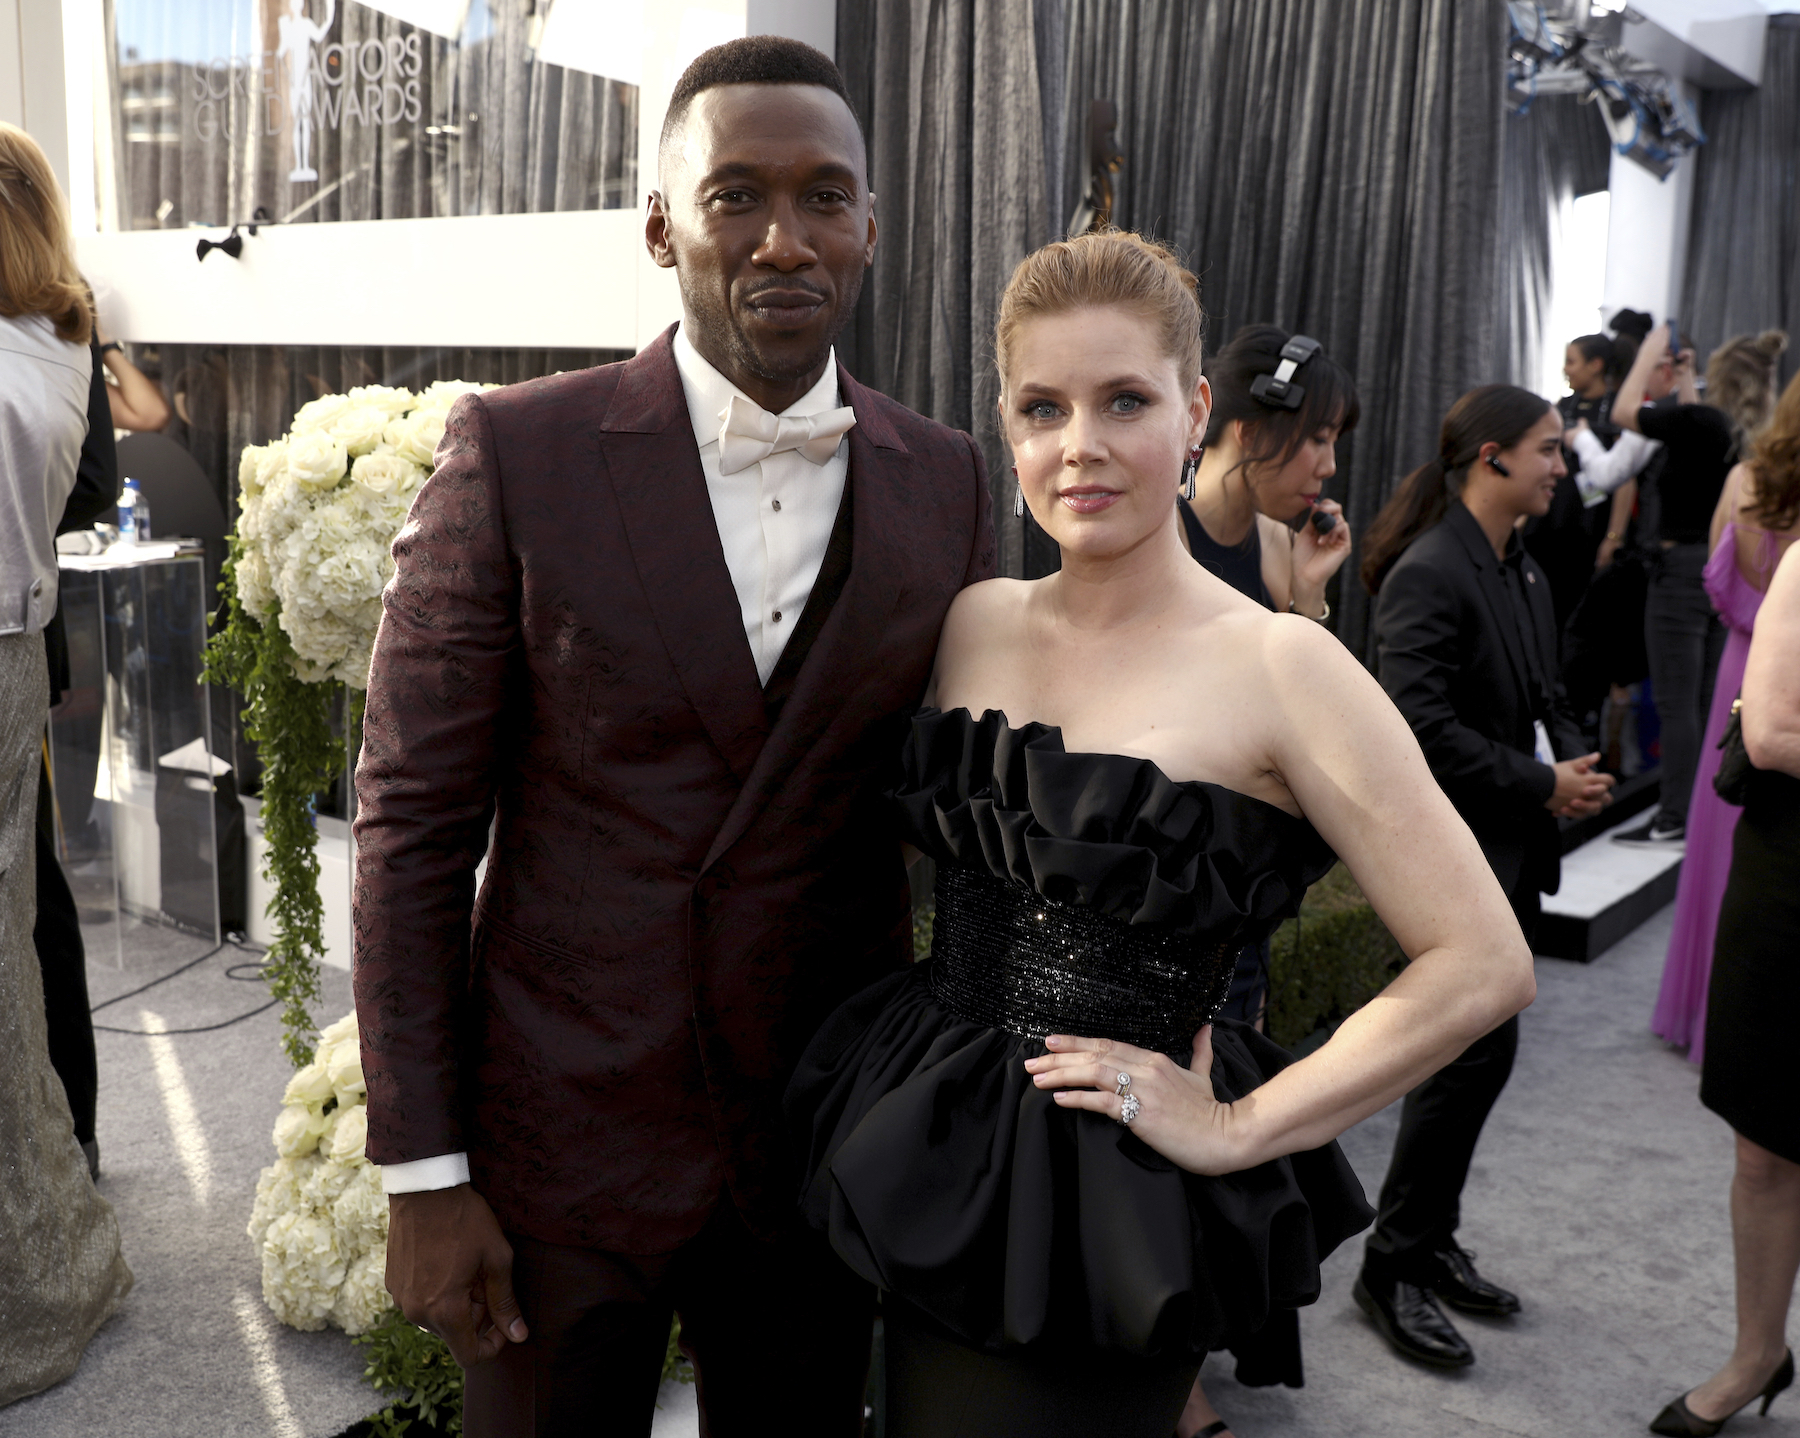 "<div class=""meta image-caption""><div class=""origin-logo origin-image ap""><span>AP</span></div><span class=""caption-text"">Mahershala Ali, left, and Amy Adams arrive at the 25th annual Screen Actors Guild Awards at the Shrine Auditorium & Expo Hall on Sunday, Jan. 27, 2019, in Los Angeles. (Matt Sayles/Invision/AP)</span></div>"